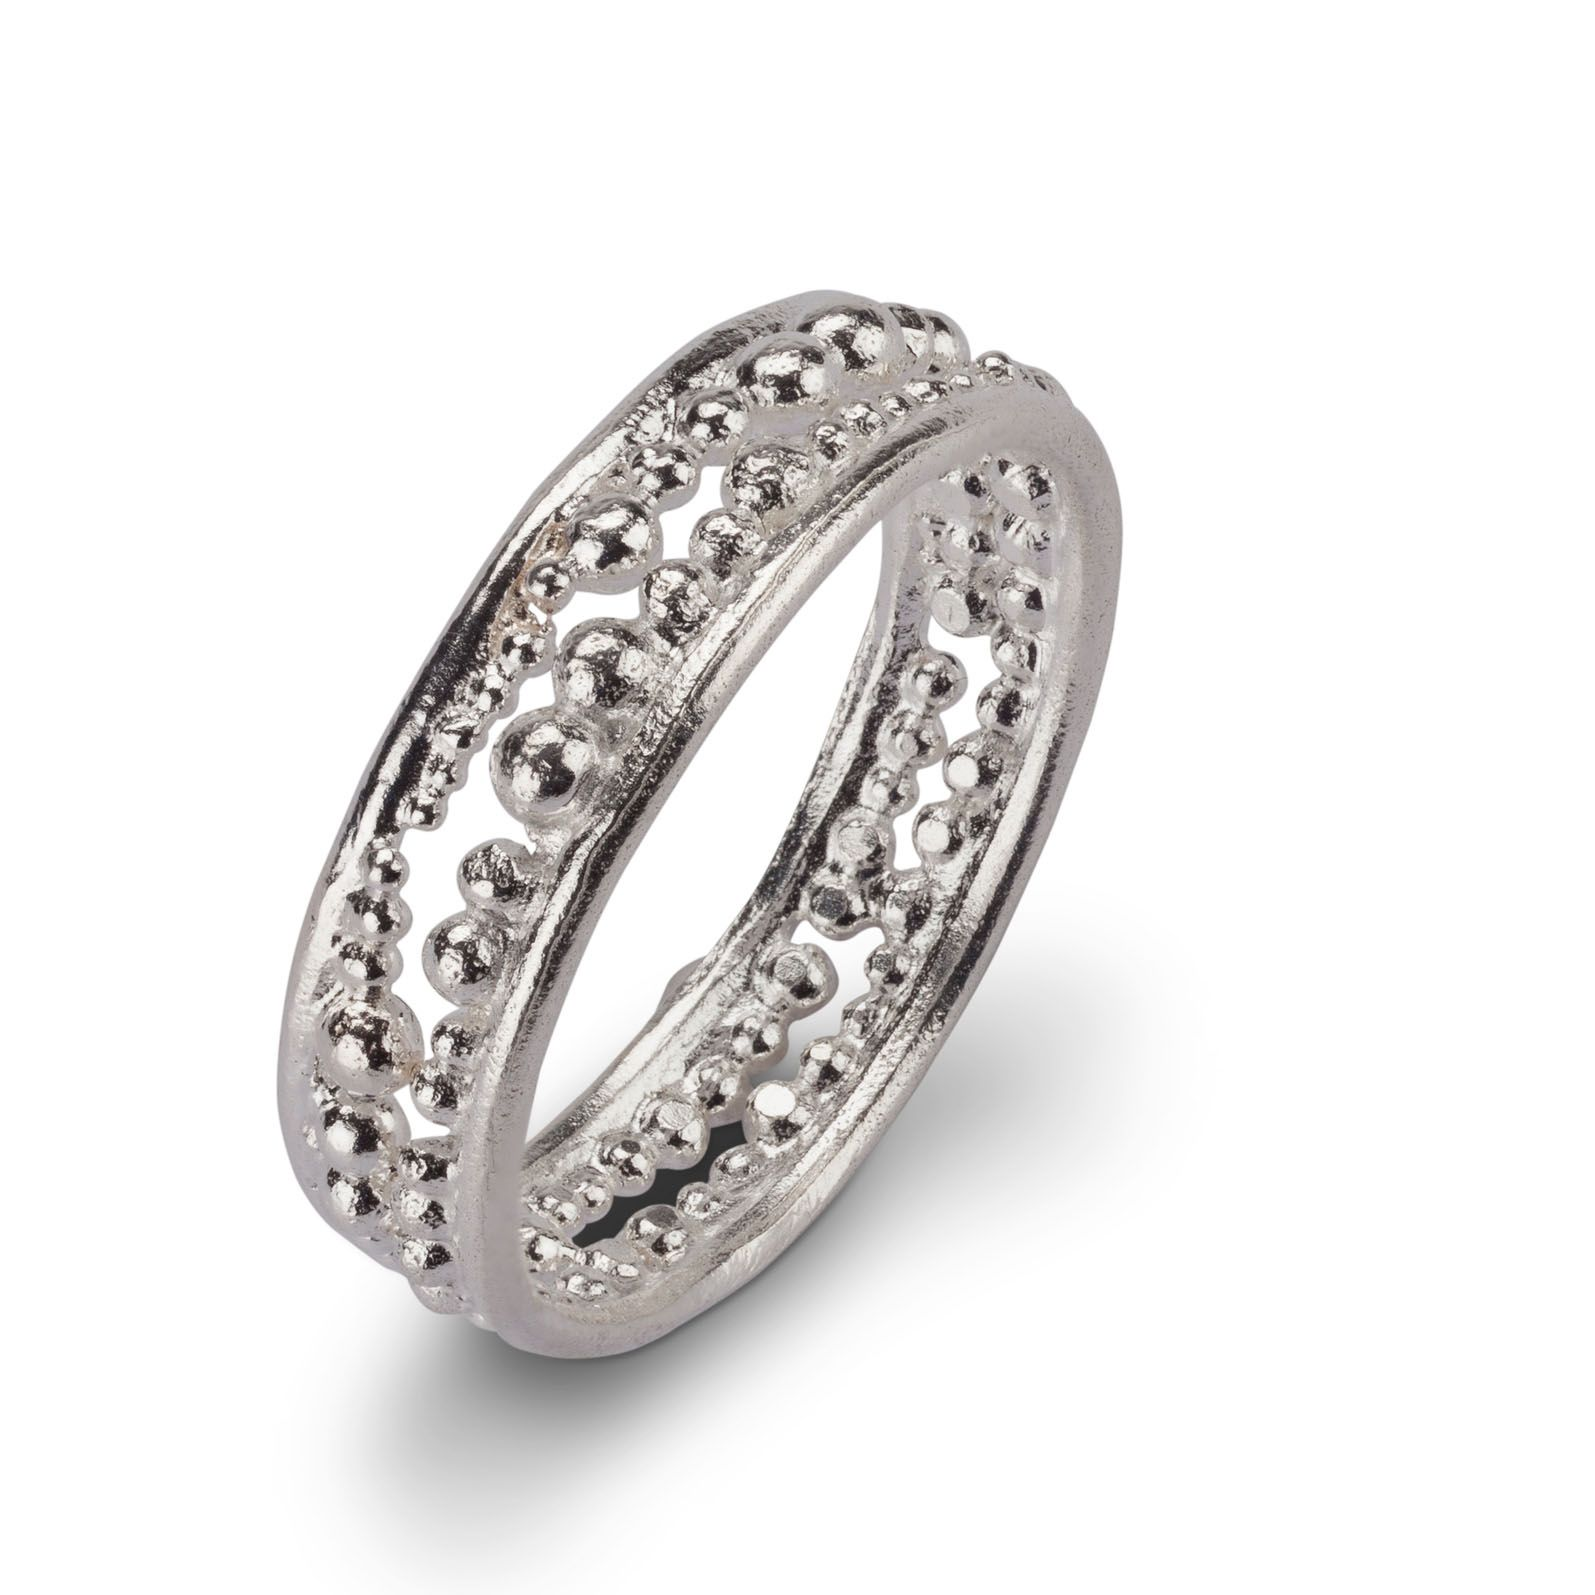 dress bespoke silver collections engagement diamond rings and wedding contemporary unique ring modern usual